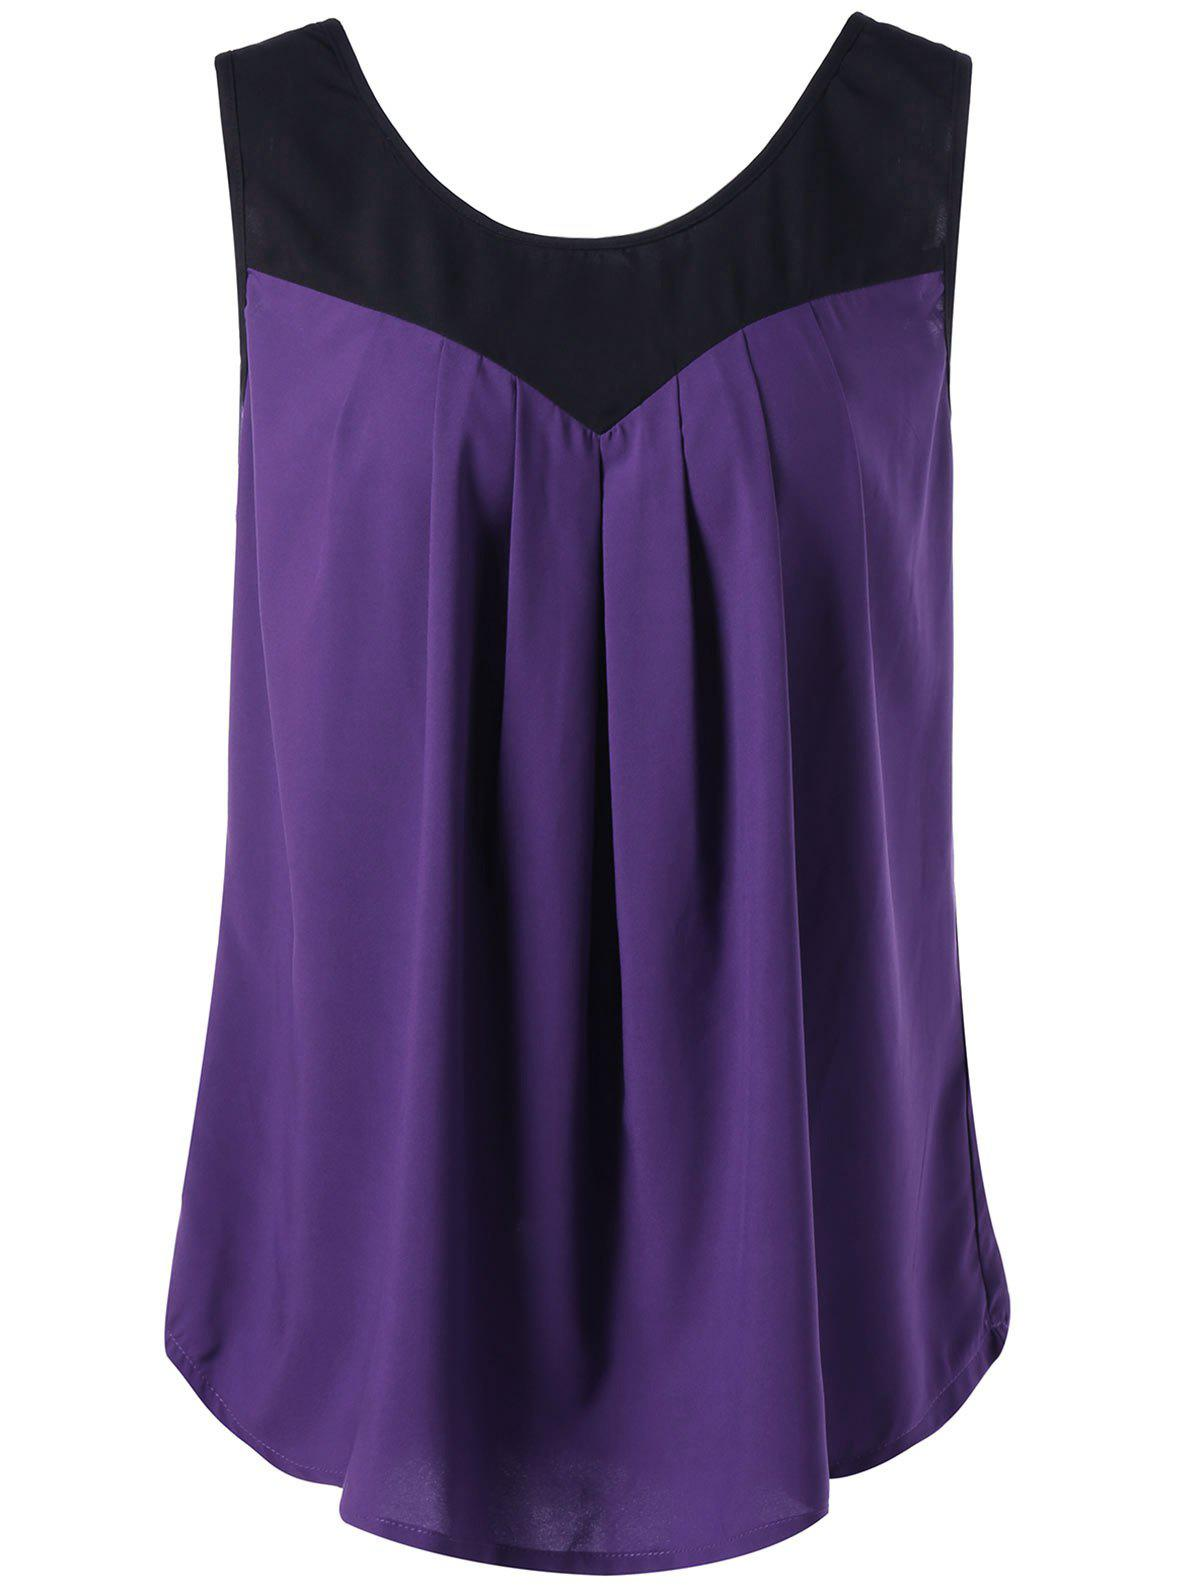 Curved Plus Size Two Tone Tank TopWOMEN<br><br>Size: 2XL; Color: PURPLE; Material: Polyester; Shirt Length: Regular; Sleeve Length: Sleeveless; Collar: Round Neck; Style: Casual; Season: Summer; Pattern Type: Solid; Weight: 0.3000kg; Package Contents: 1 x Tank Top;